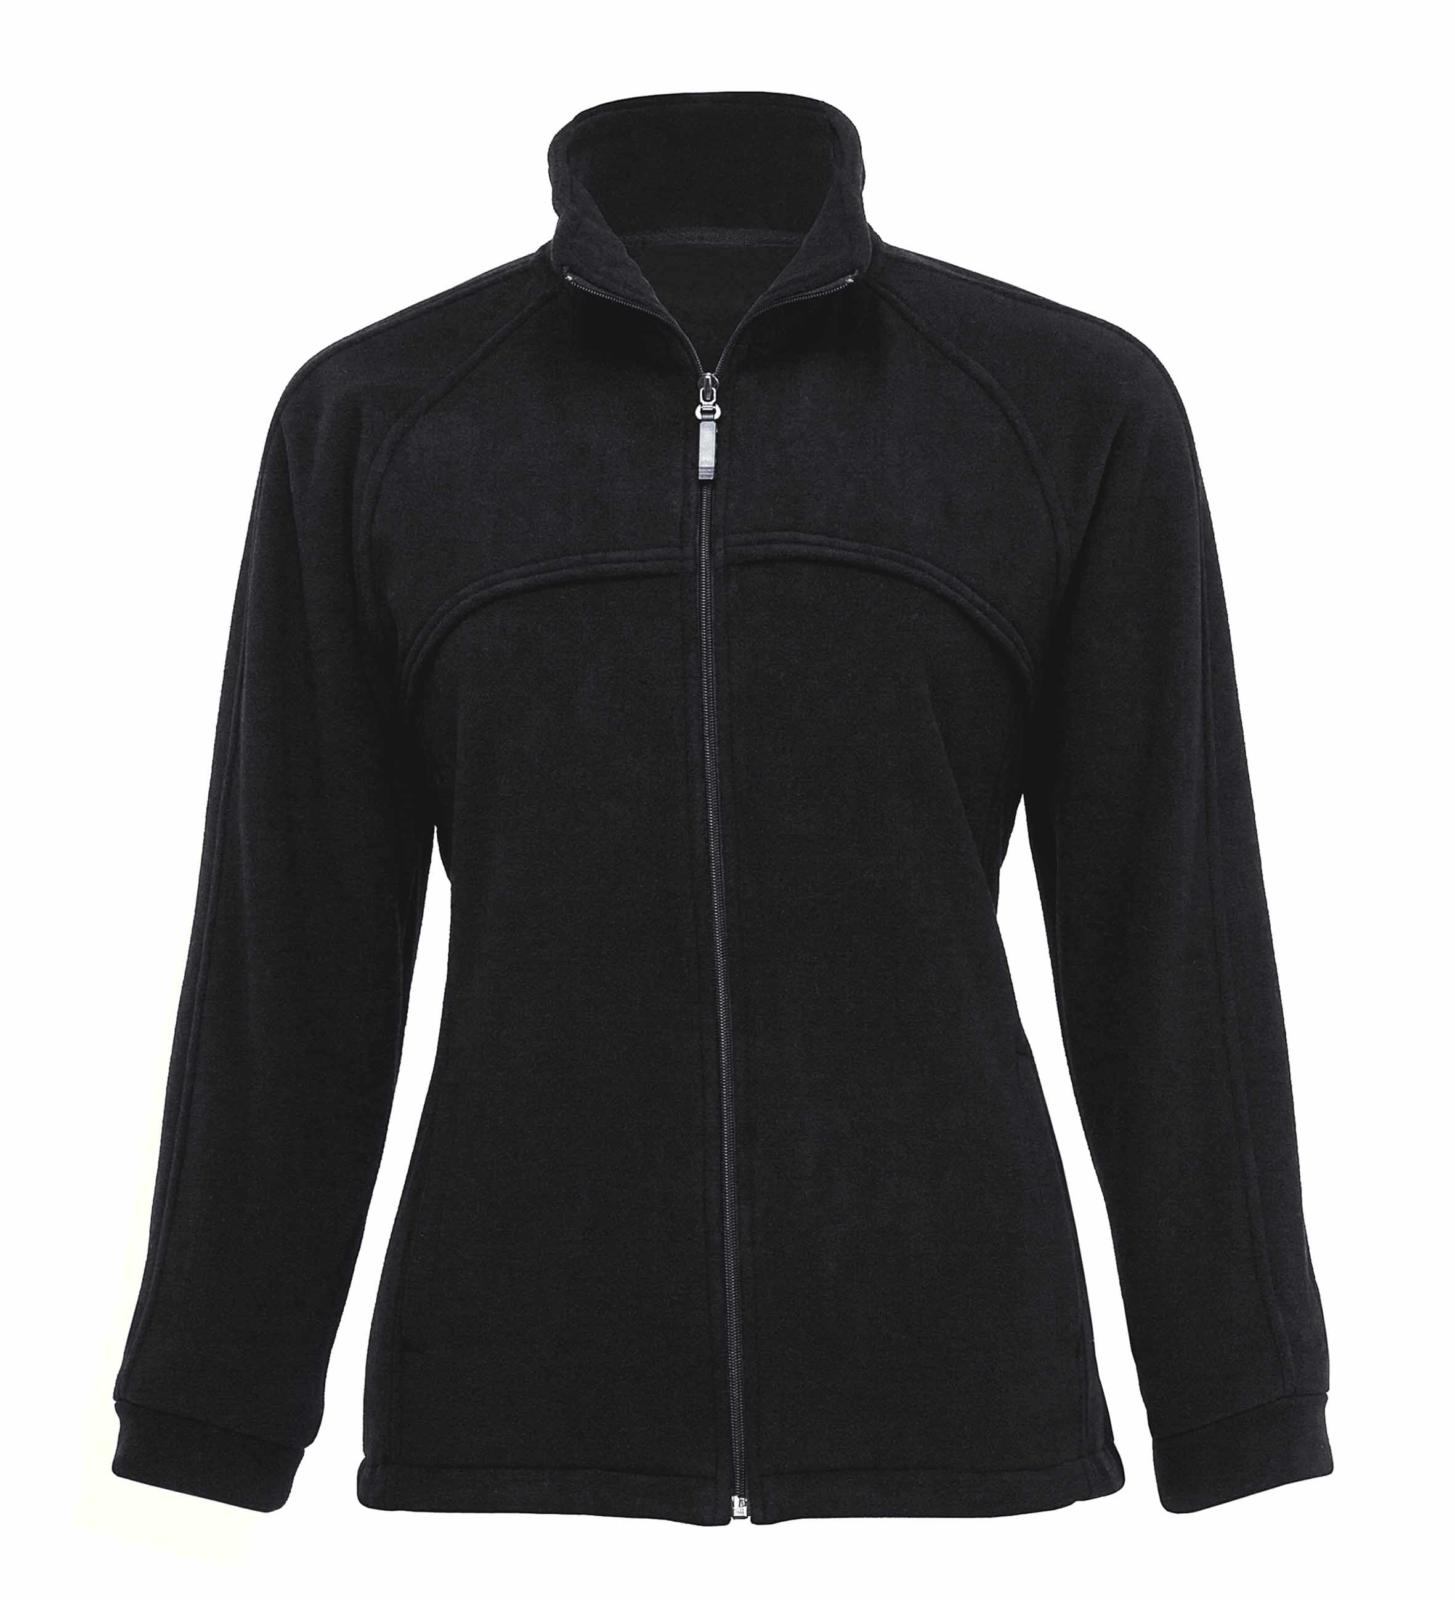 Womens Microfleece Jacket